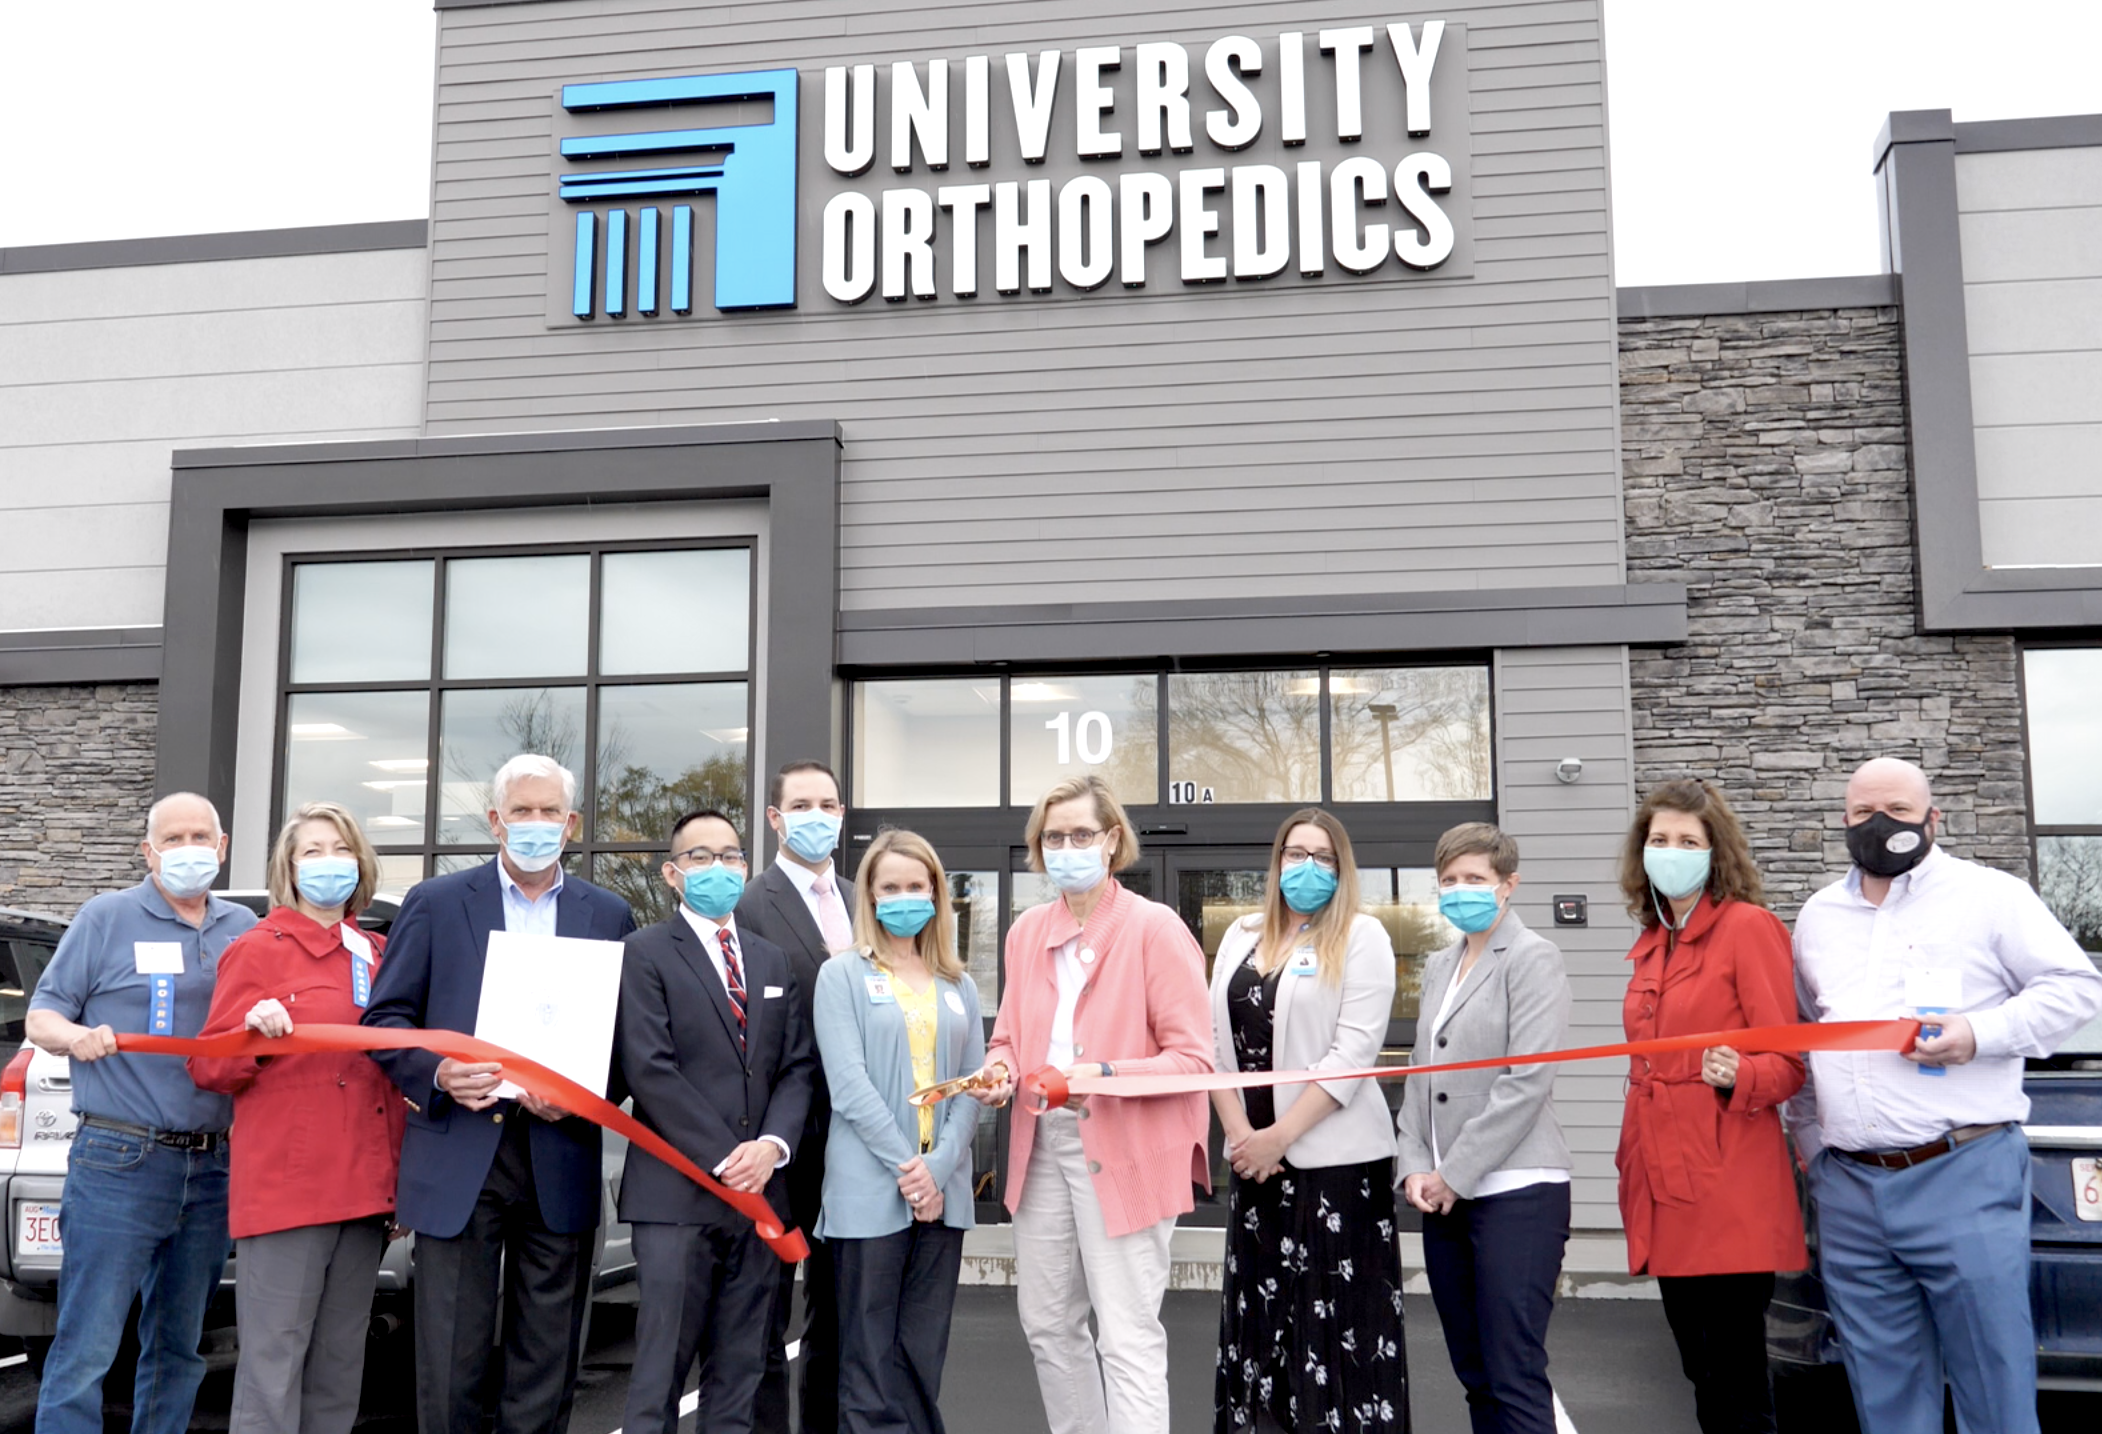 University Orthopedics Mansfield Receives Warm Welcome